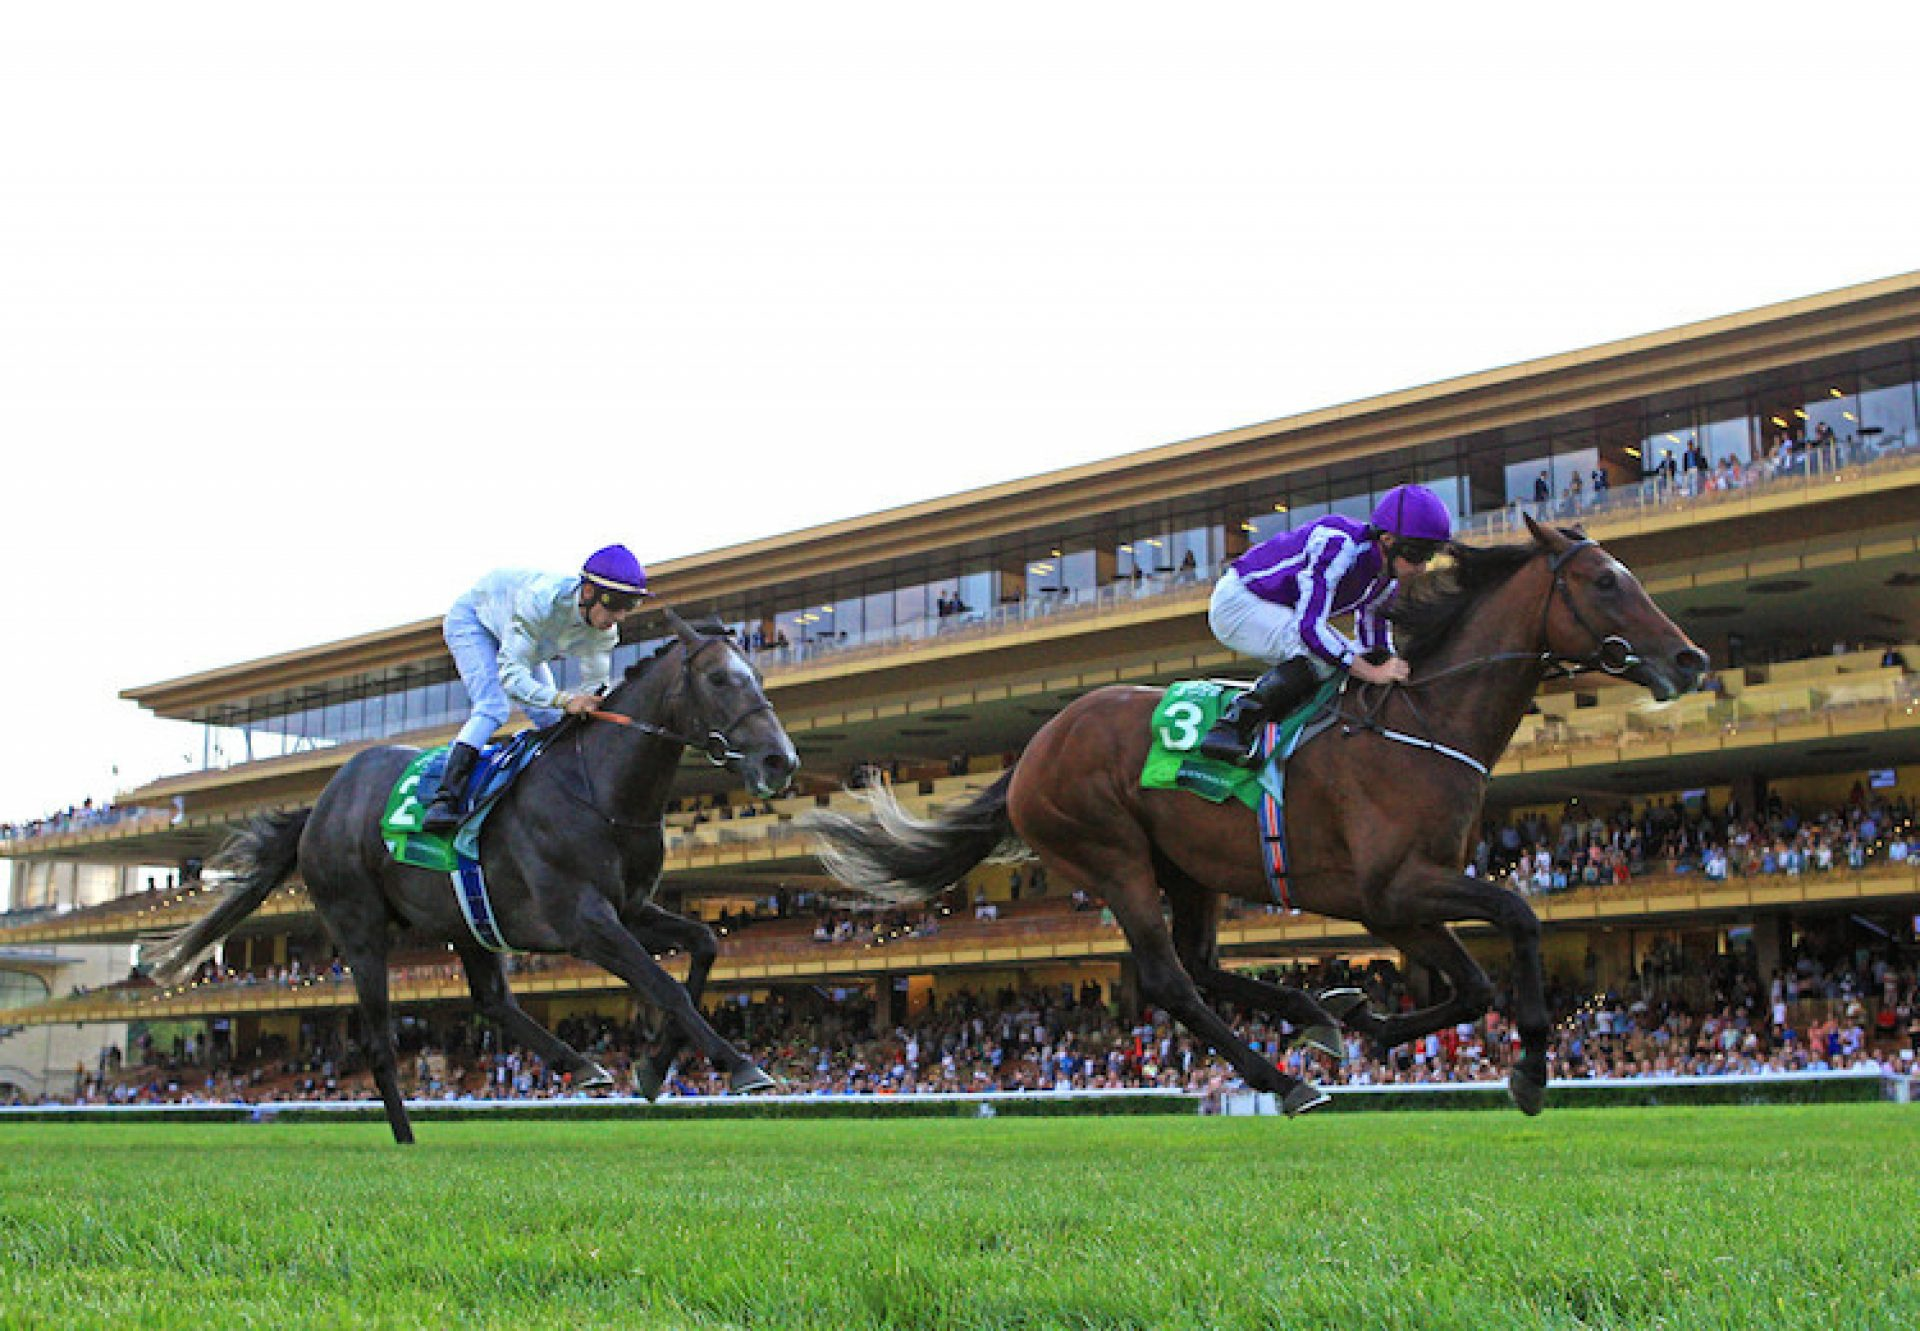 Kew Gardens (Galileo) winning the G1 Grand Prix de Paris at Longchamp